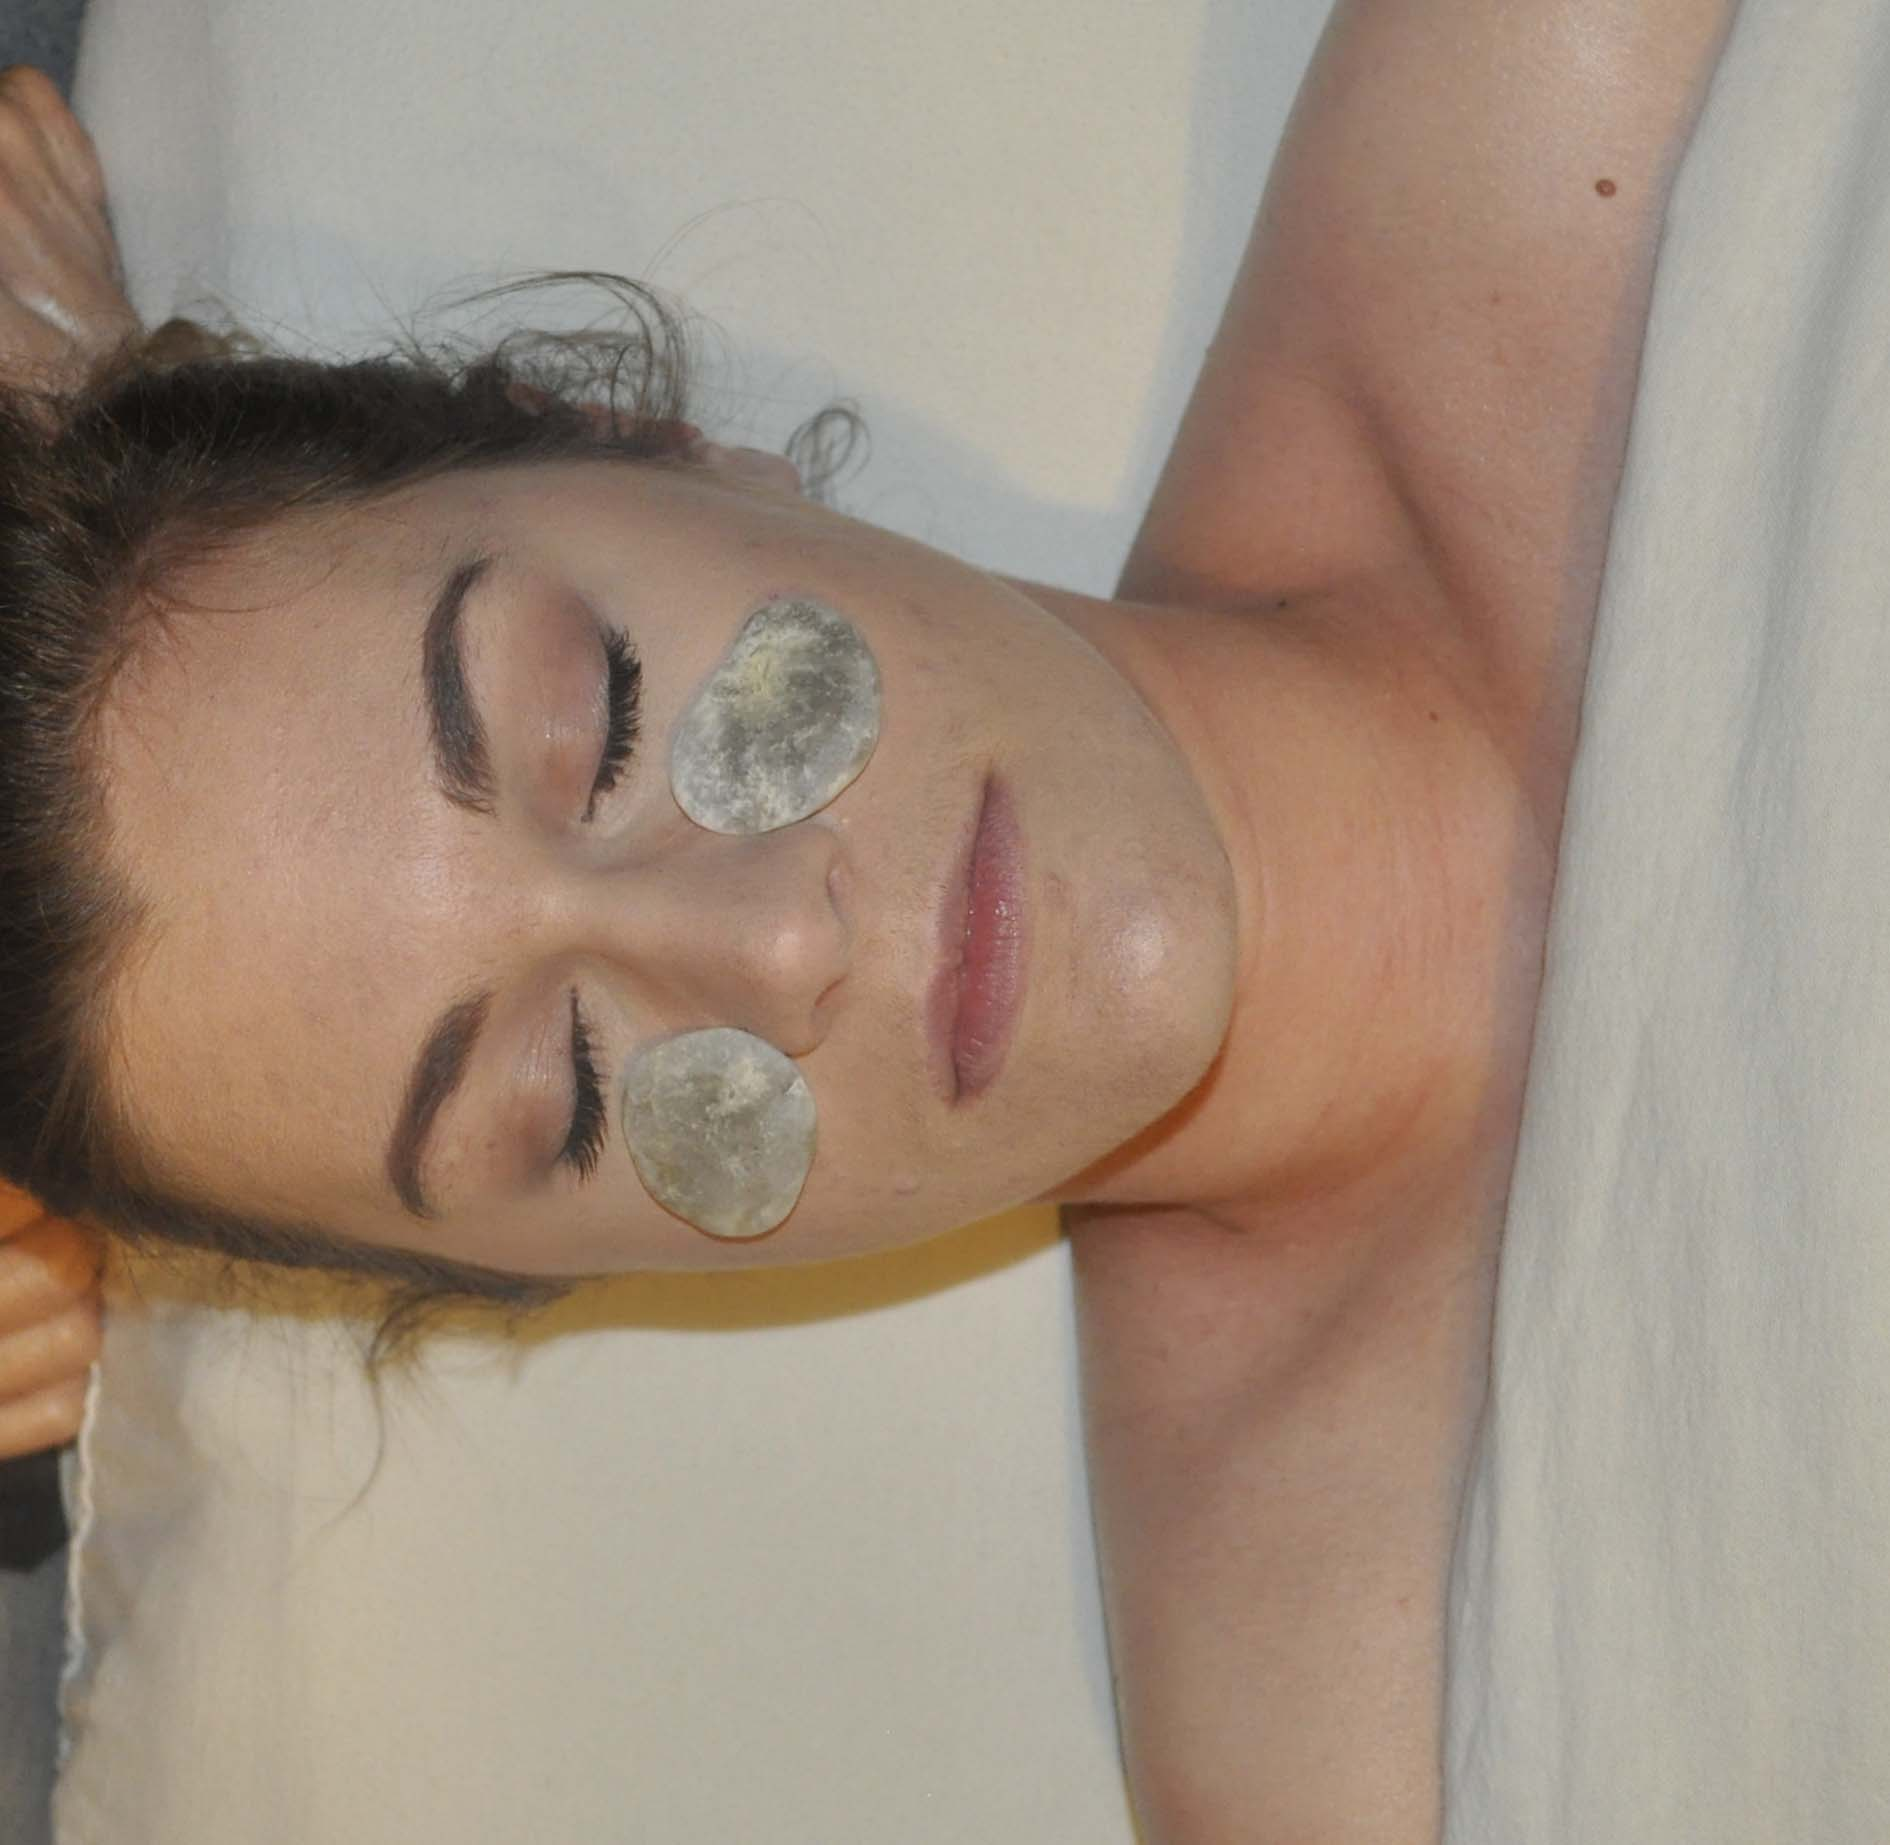 Easy massage and spa add on services that make eye-opening,